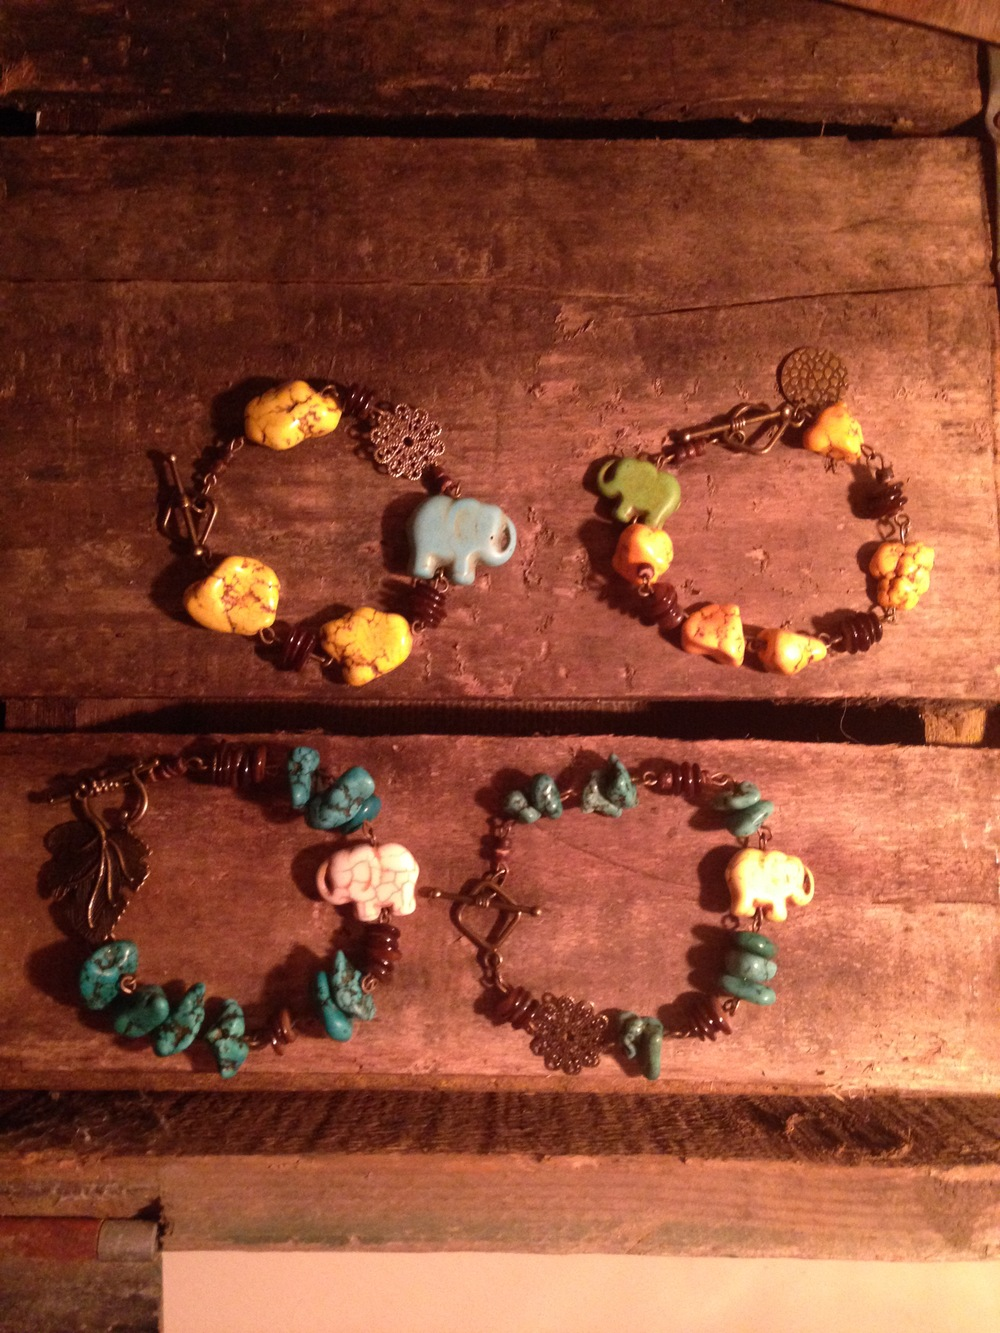 Custom Order for 4 elephant bracelets to pair with a specific person in their family to give as gifts.